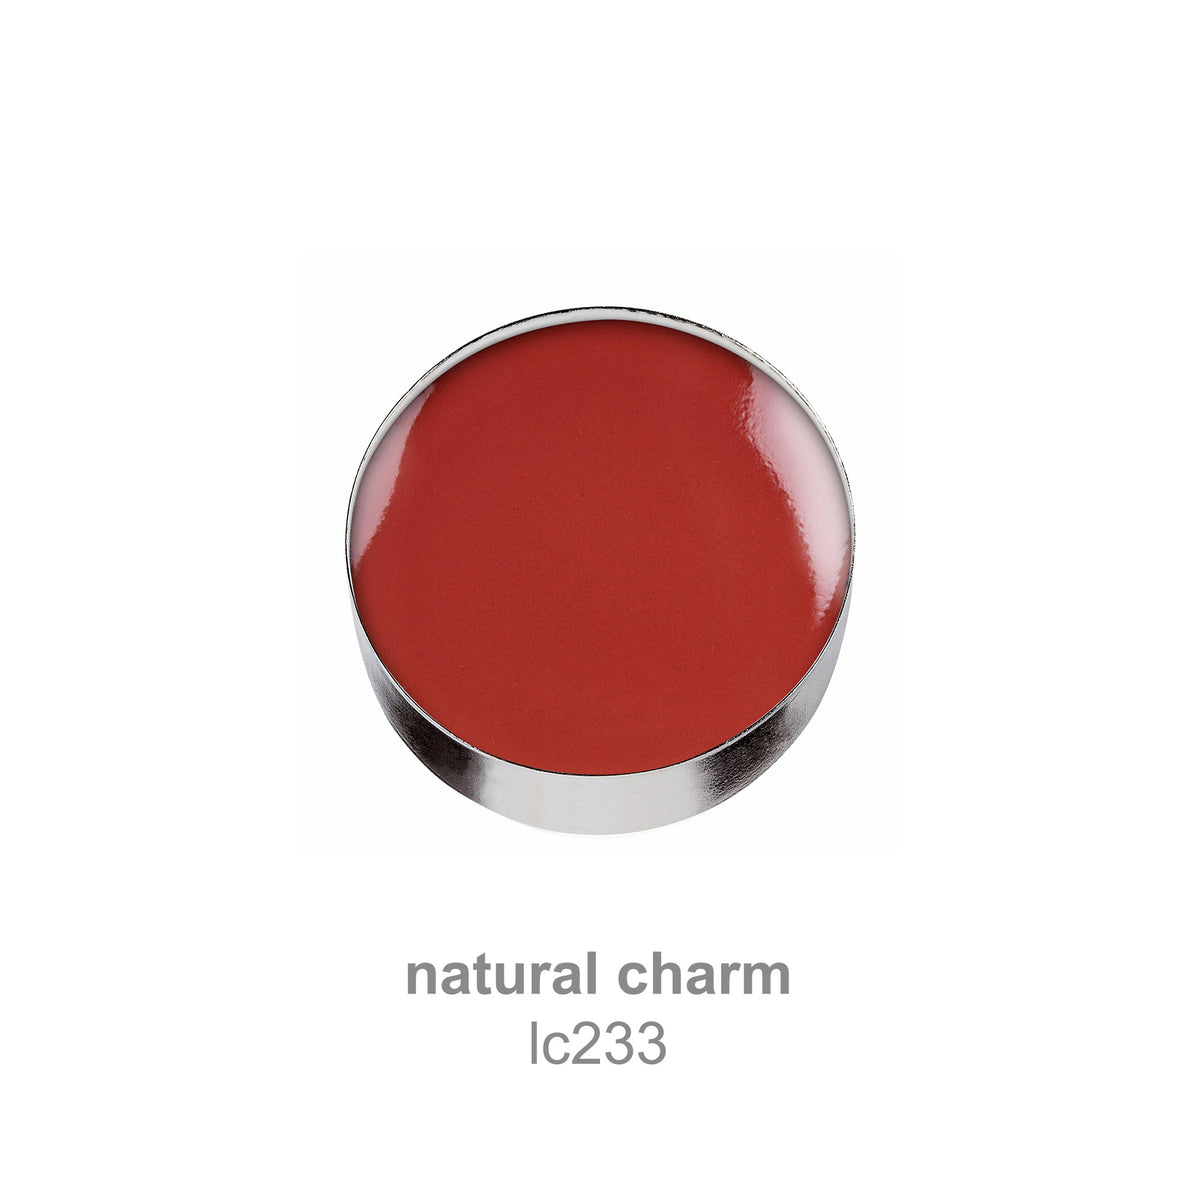 natural charm (lc233)